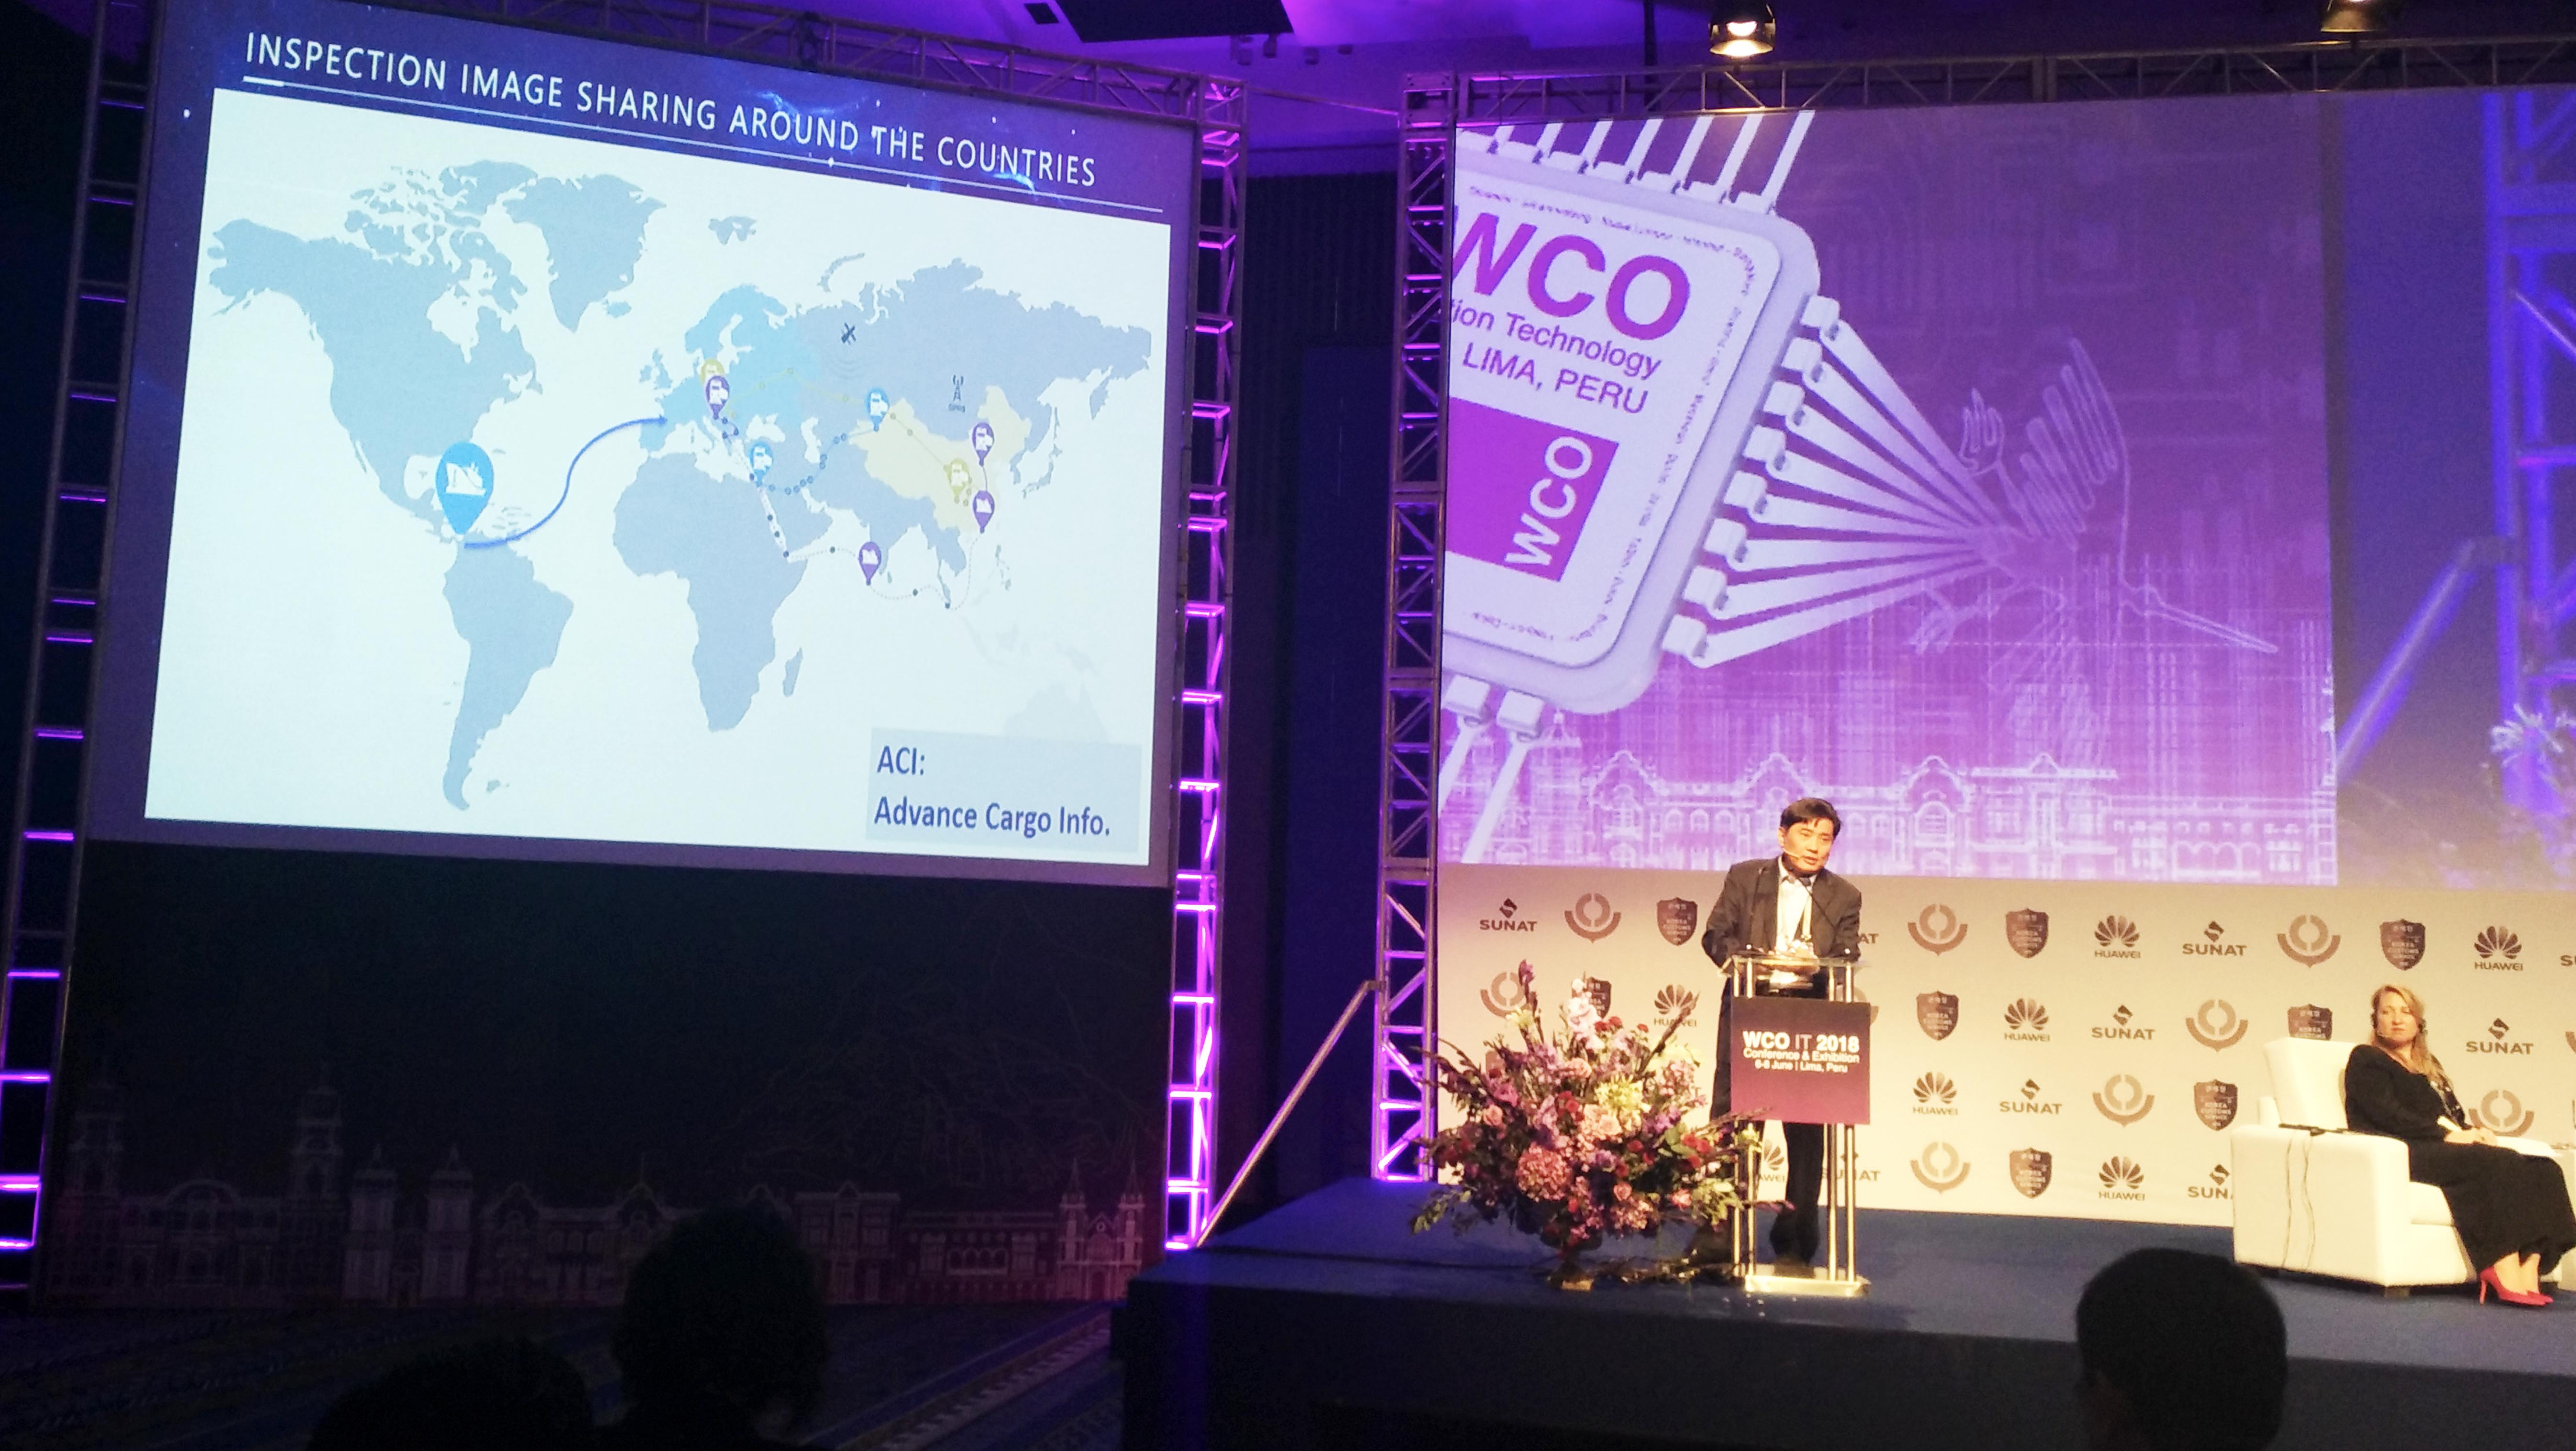 NUCTECH participated in the 2018 WCO IT Conference and Exhibition